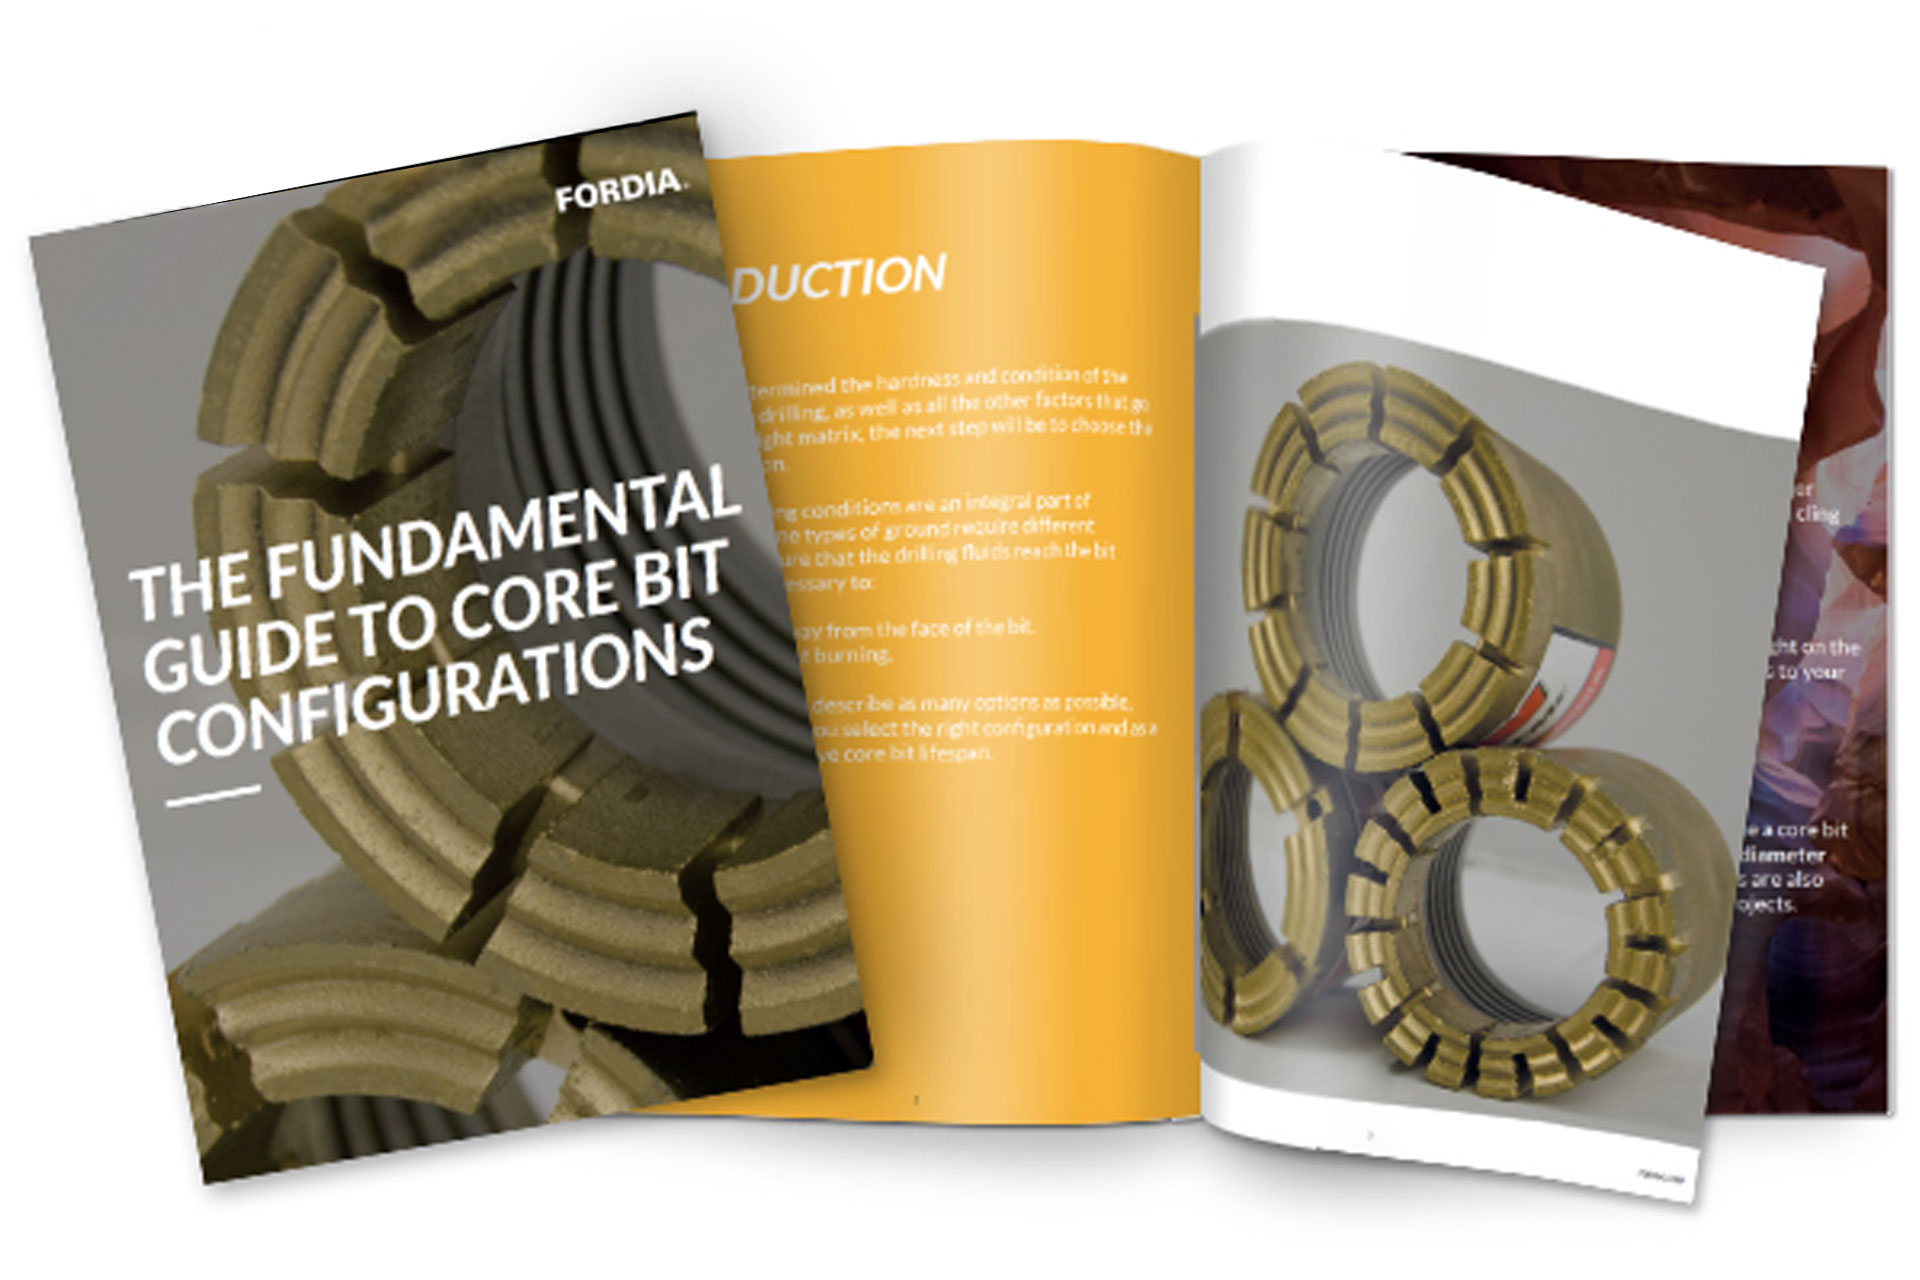 Our Free Guide to Core Bit Configurations Has Been Updated